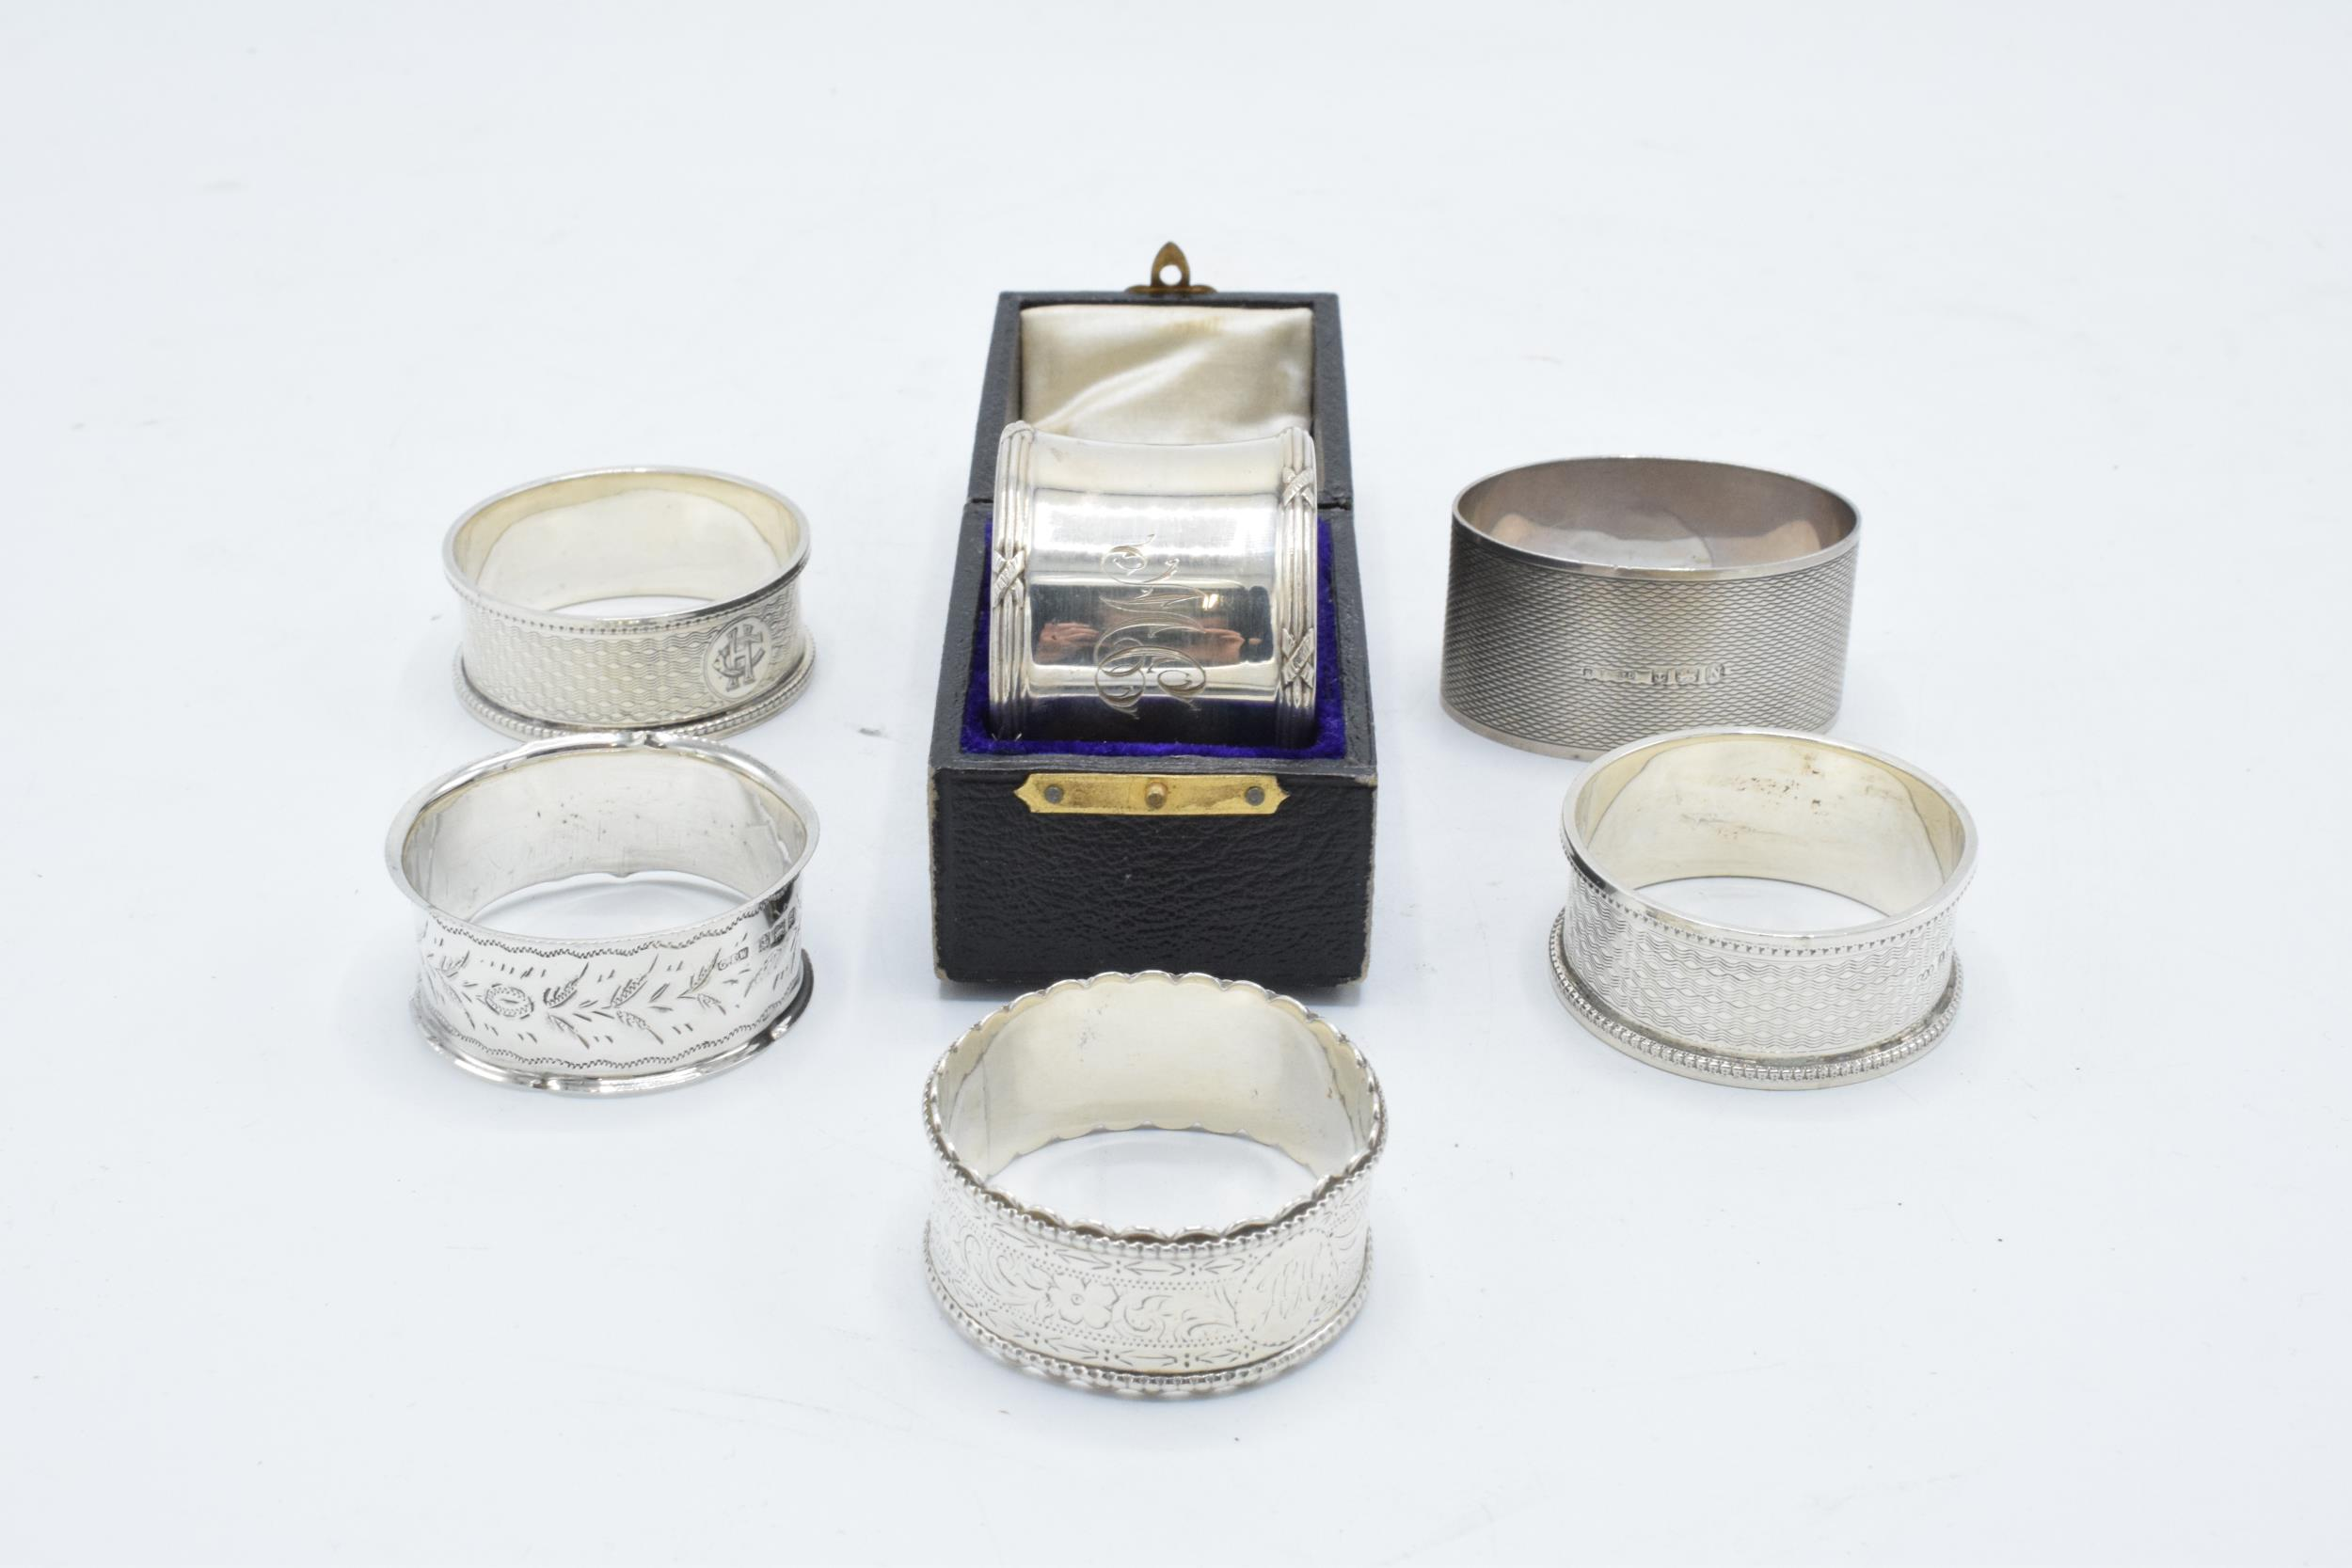 Group of 6 silver napkin rings. All hallmarked, 4 rings with engraved initials, 1 has a case. weight